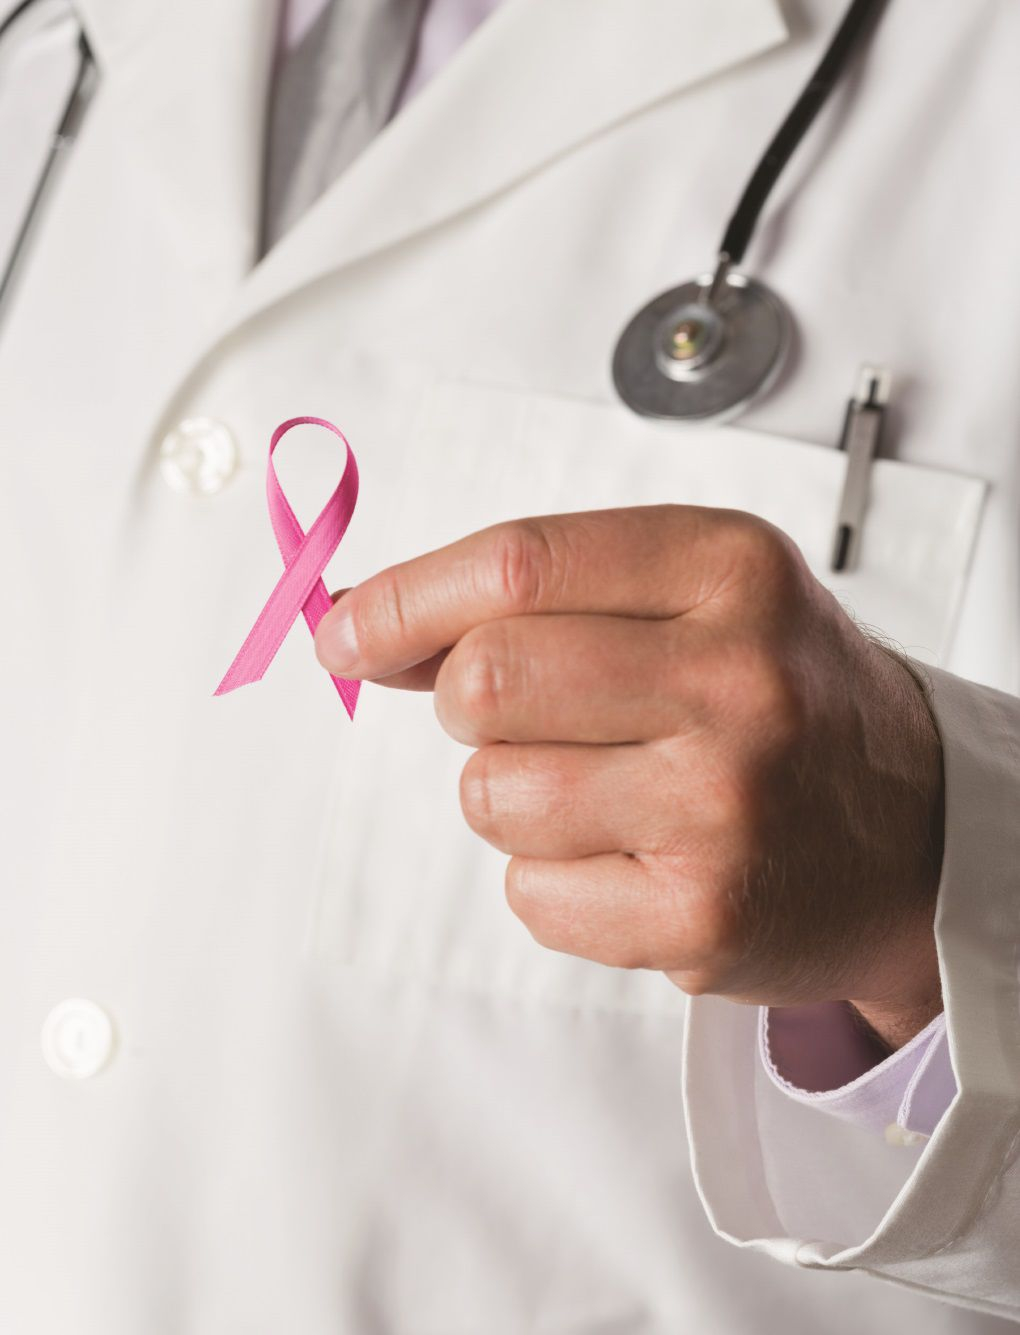 Multi-disciplinary approach gives Cancer Center edge on treatment